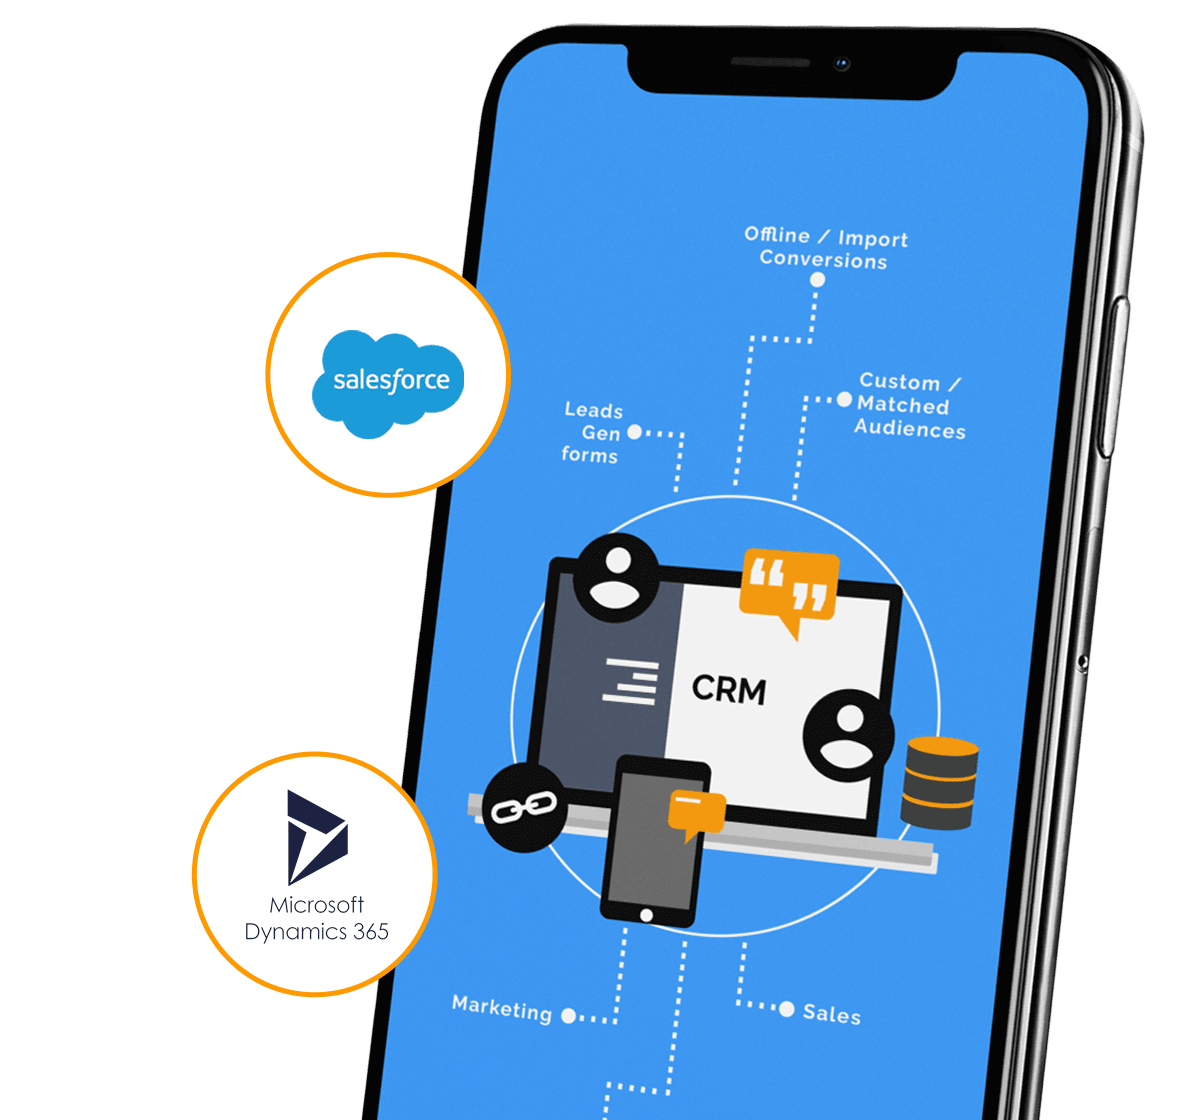 Image of a phone screen showing CRM integration